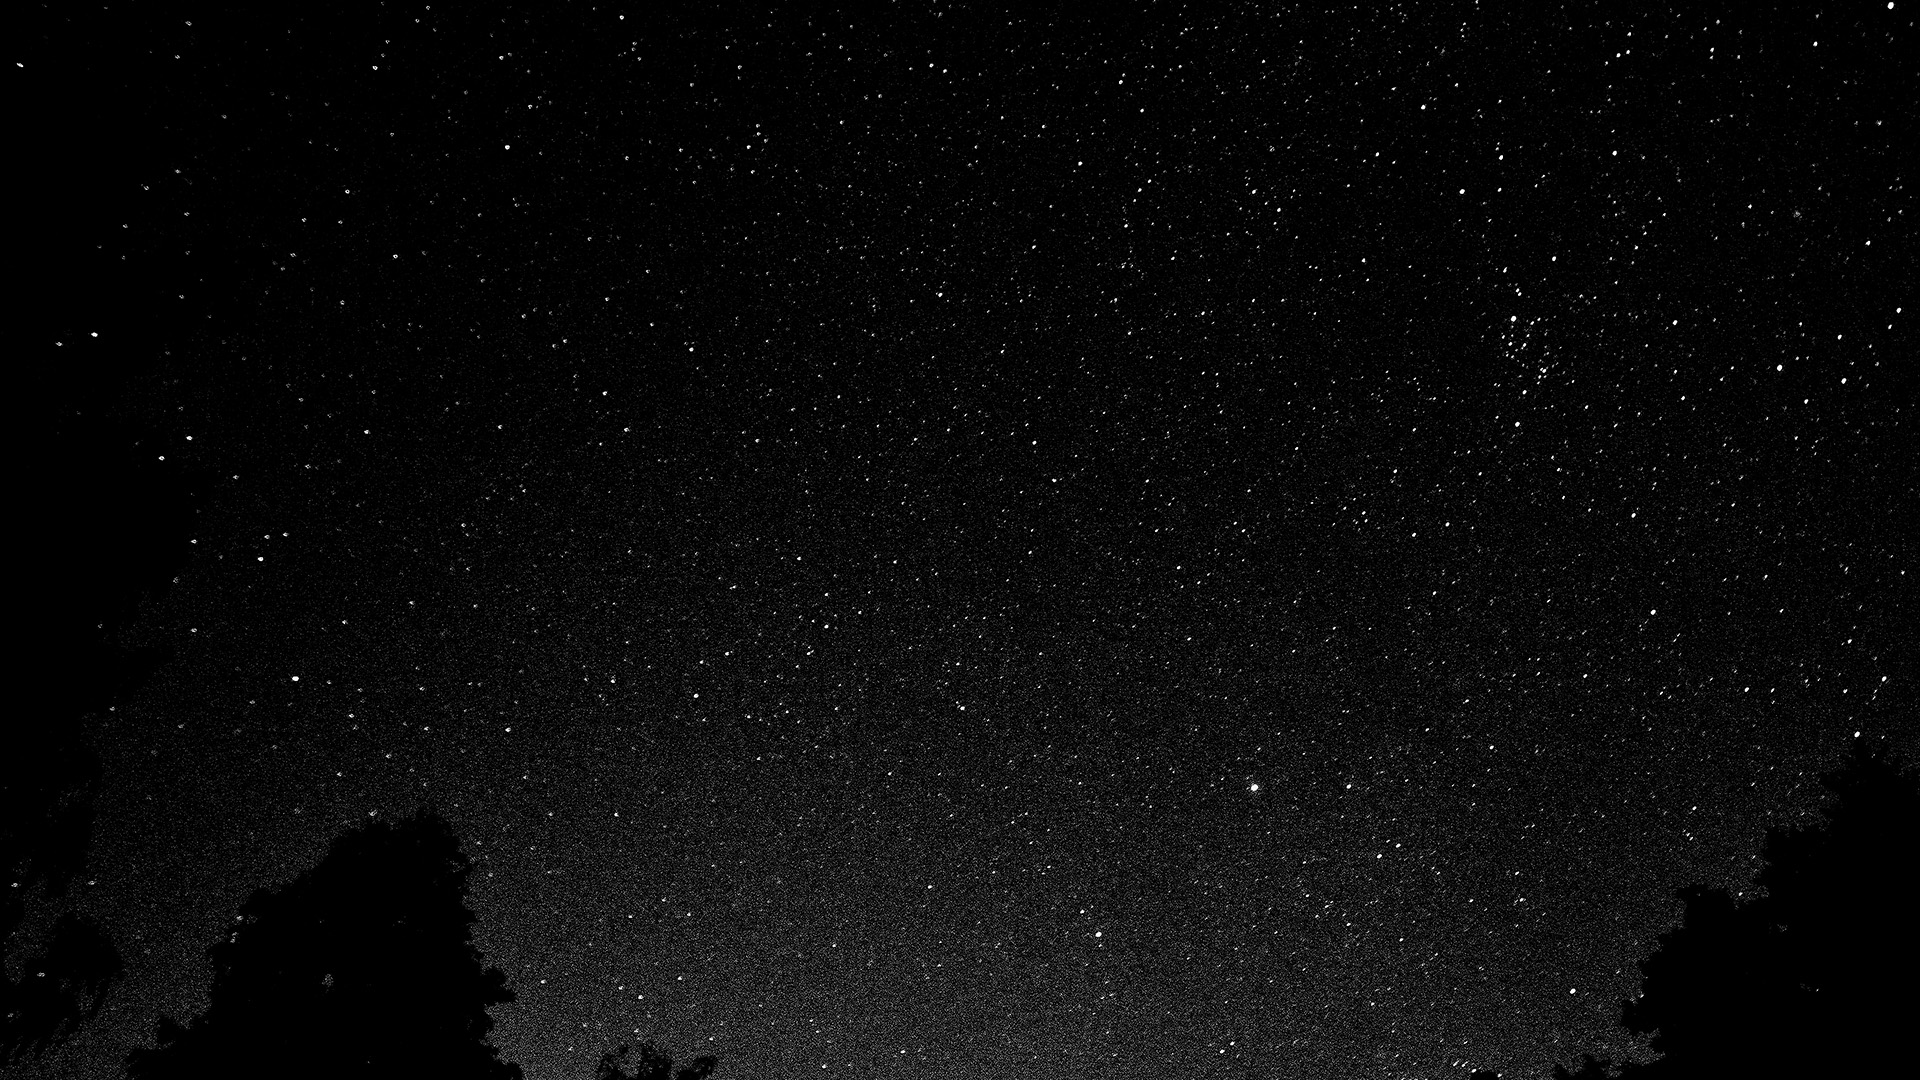 Fall Mountain Desktop Wallpaper Mt43 Starry Night Sky Star Galaxy Space White Black